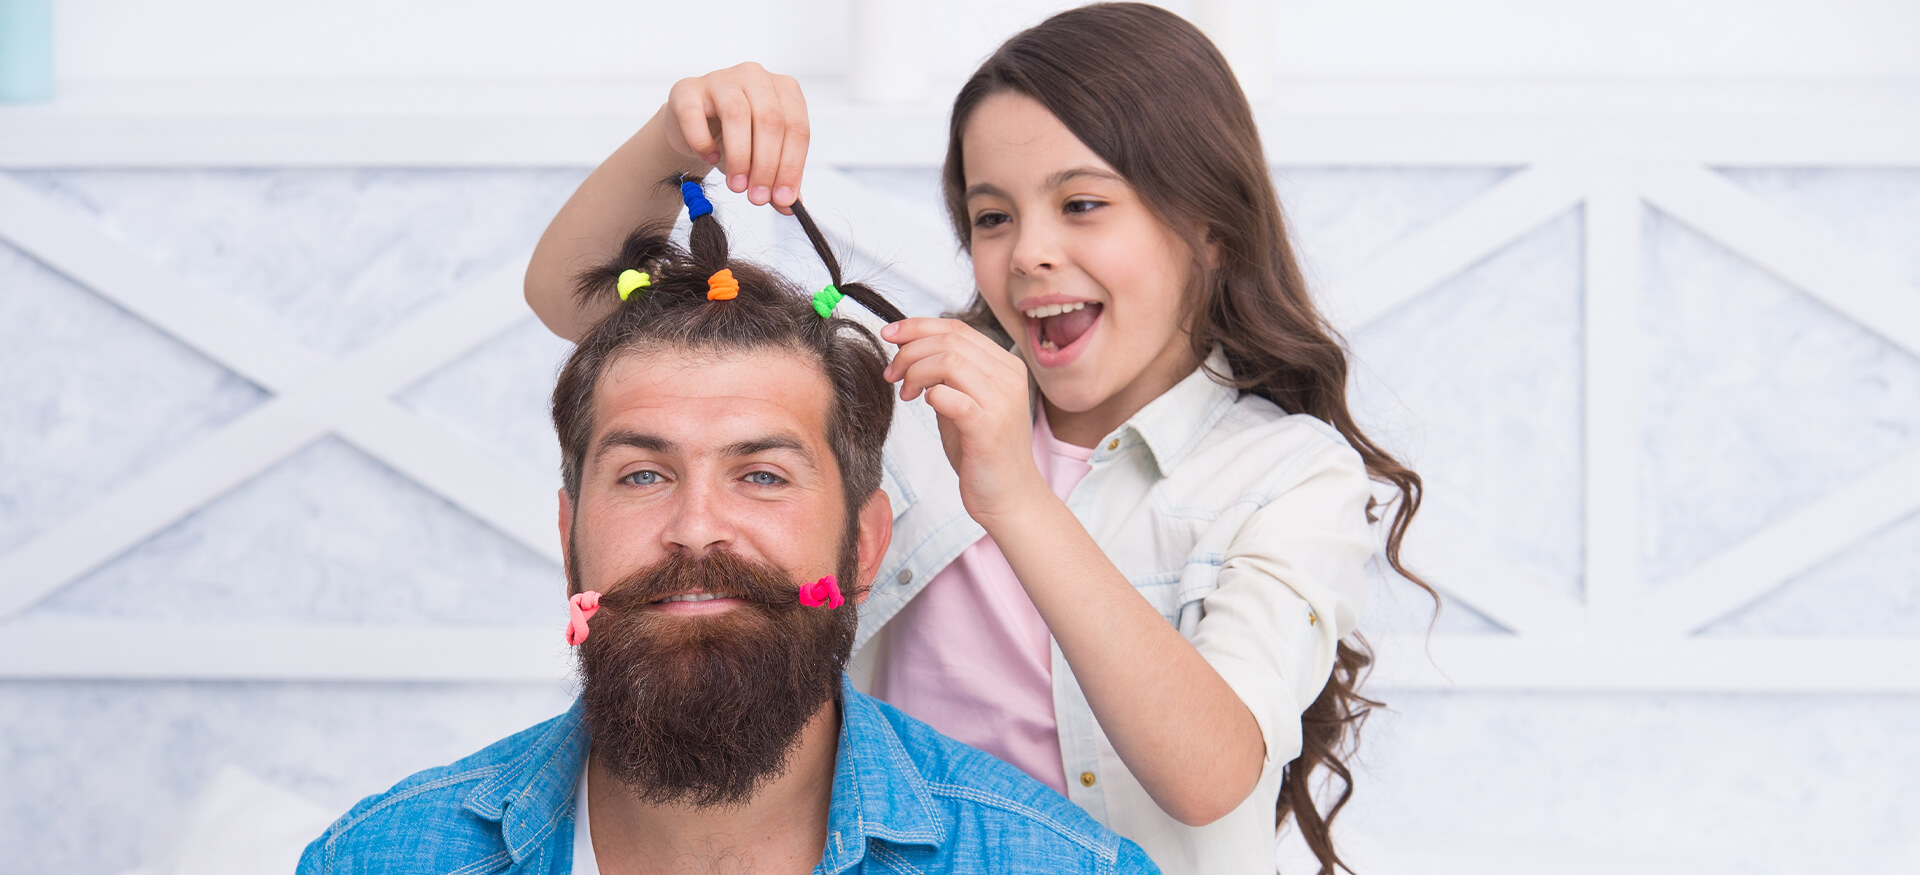 #EveryuthBreaksTheStereotype – Celebrate Father's Day With A Pamper Sesh